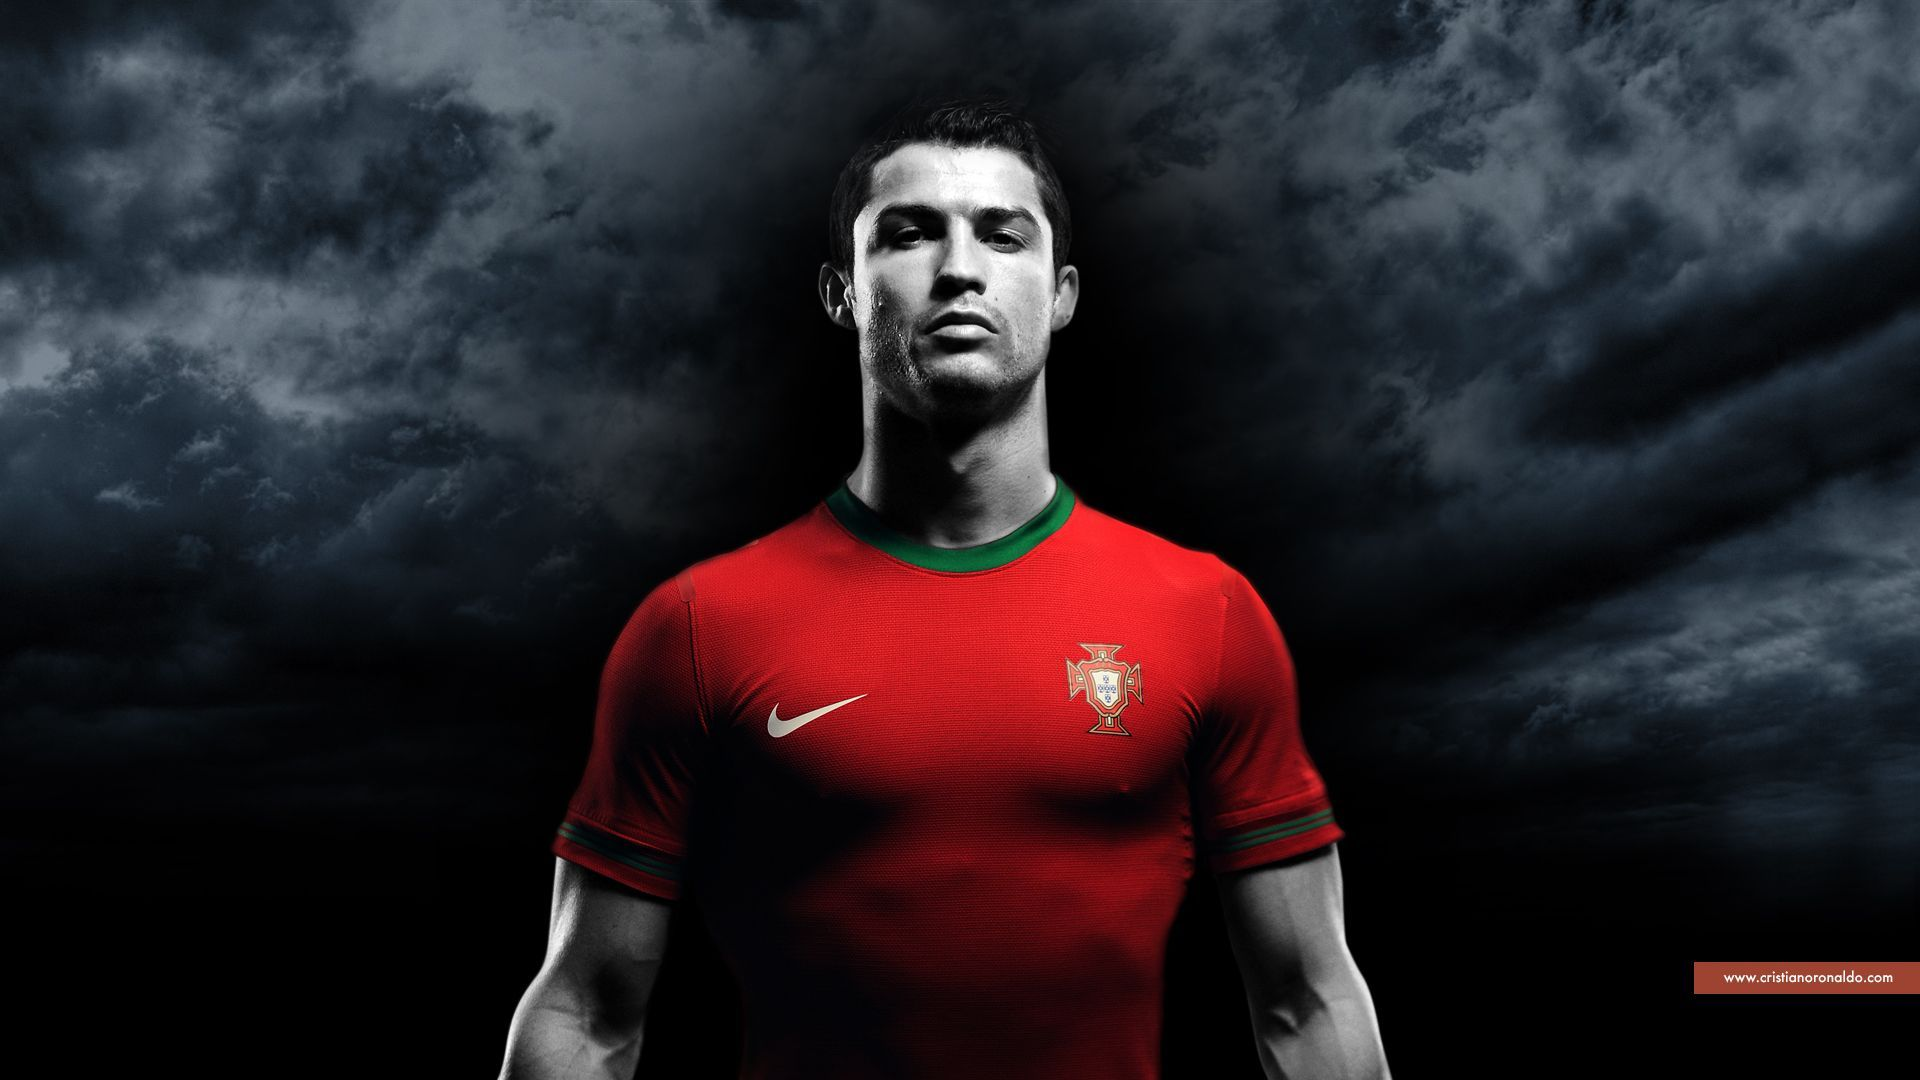 118 Cristiano Ronaldo Wallpapers Download New HD Images Of